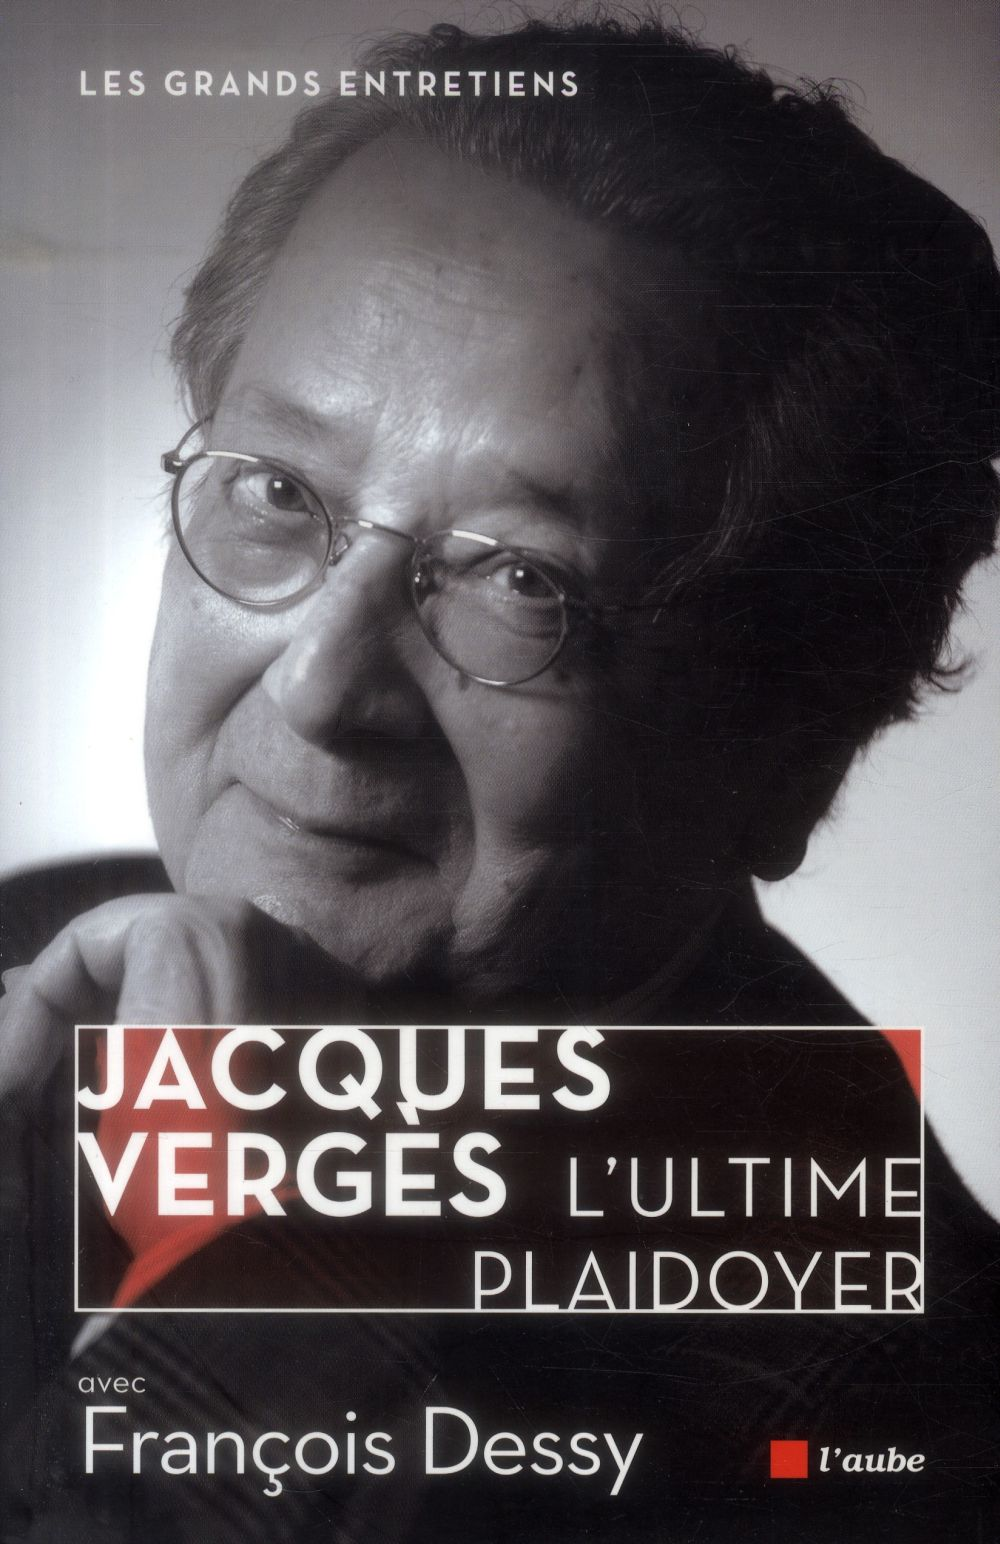 Jacques vergès ; l'ultime plaidoyer